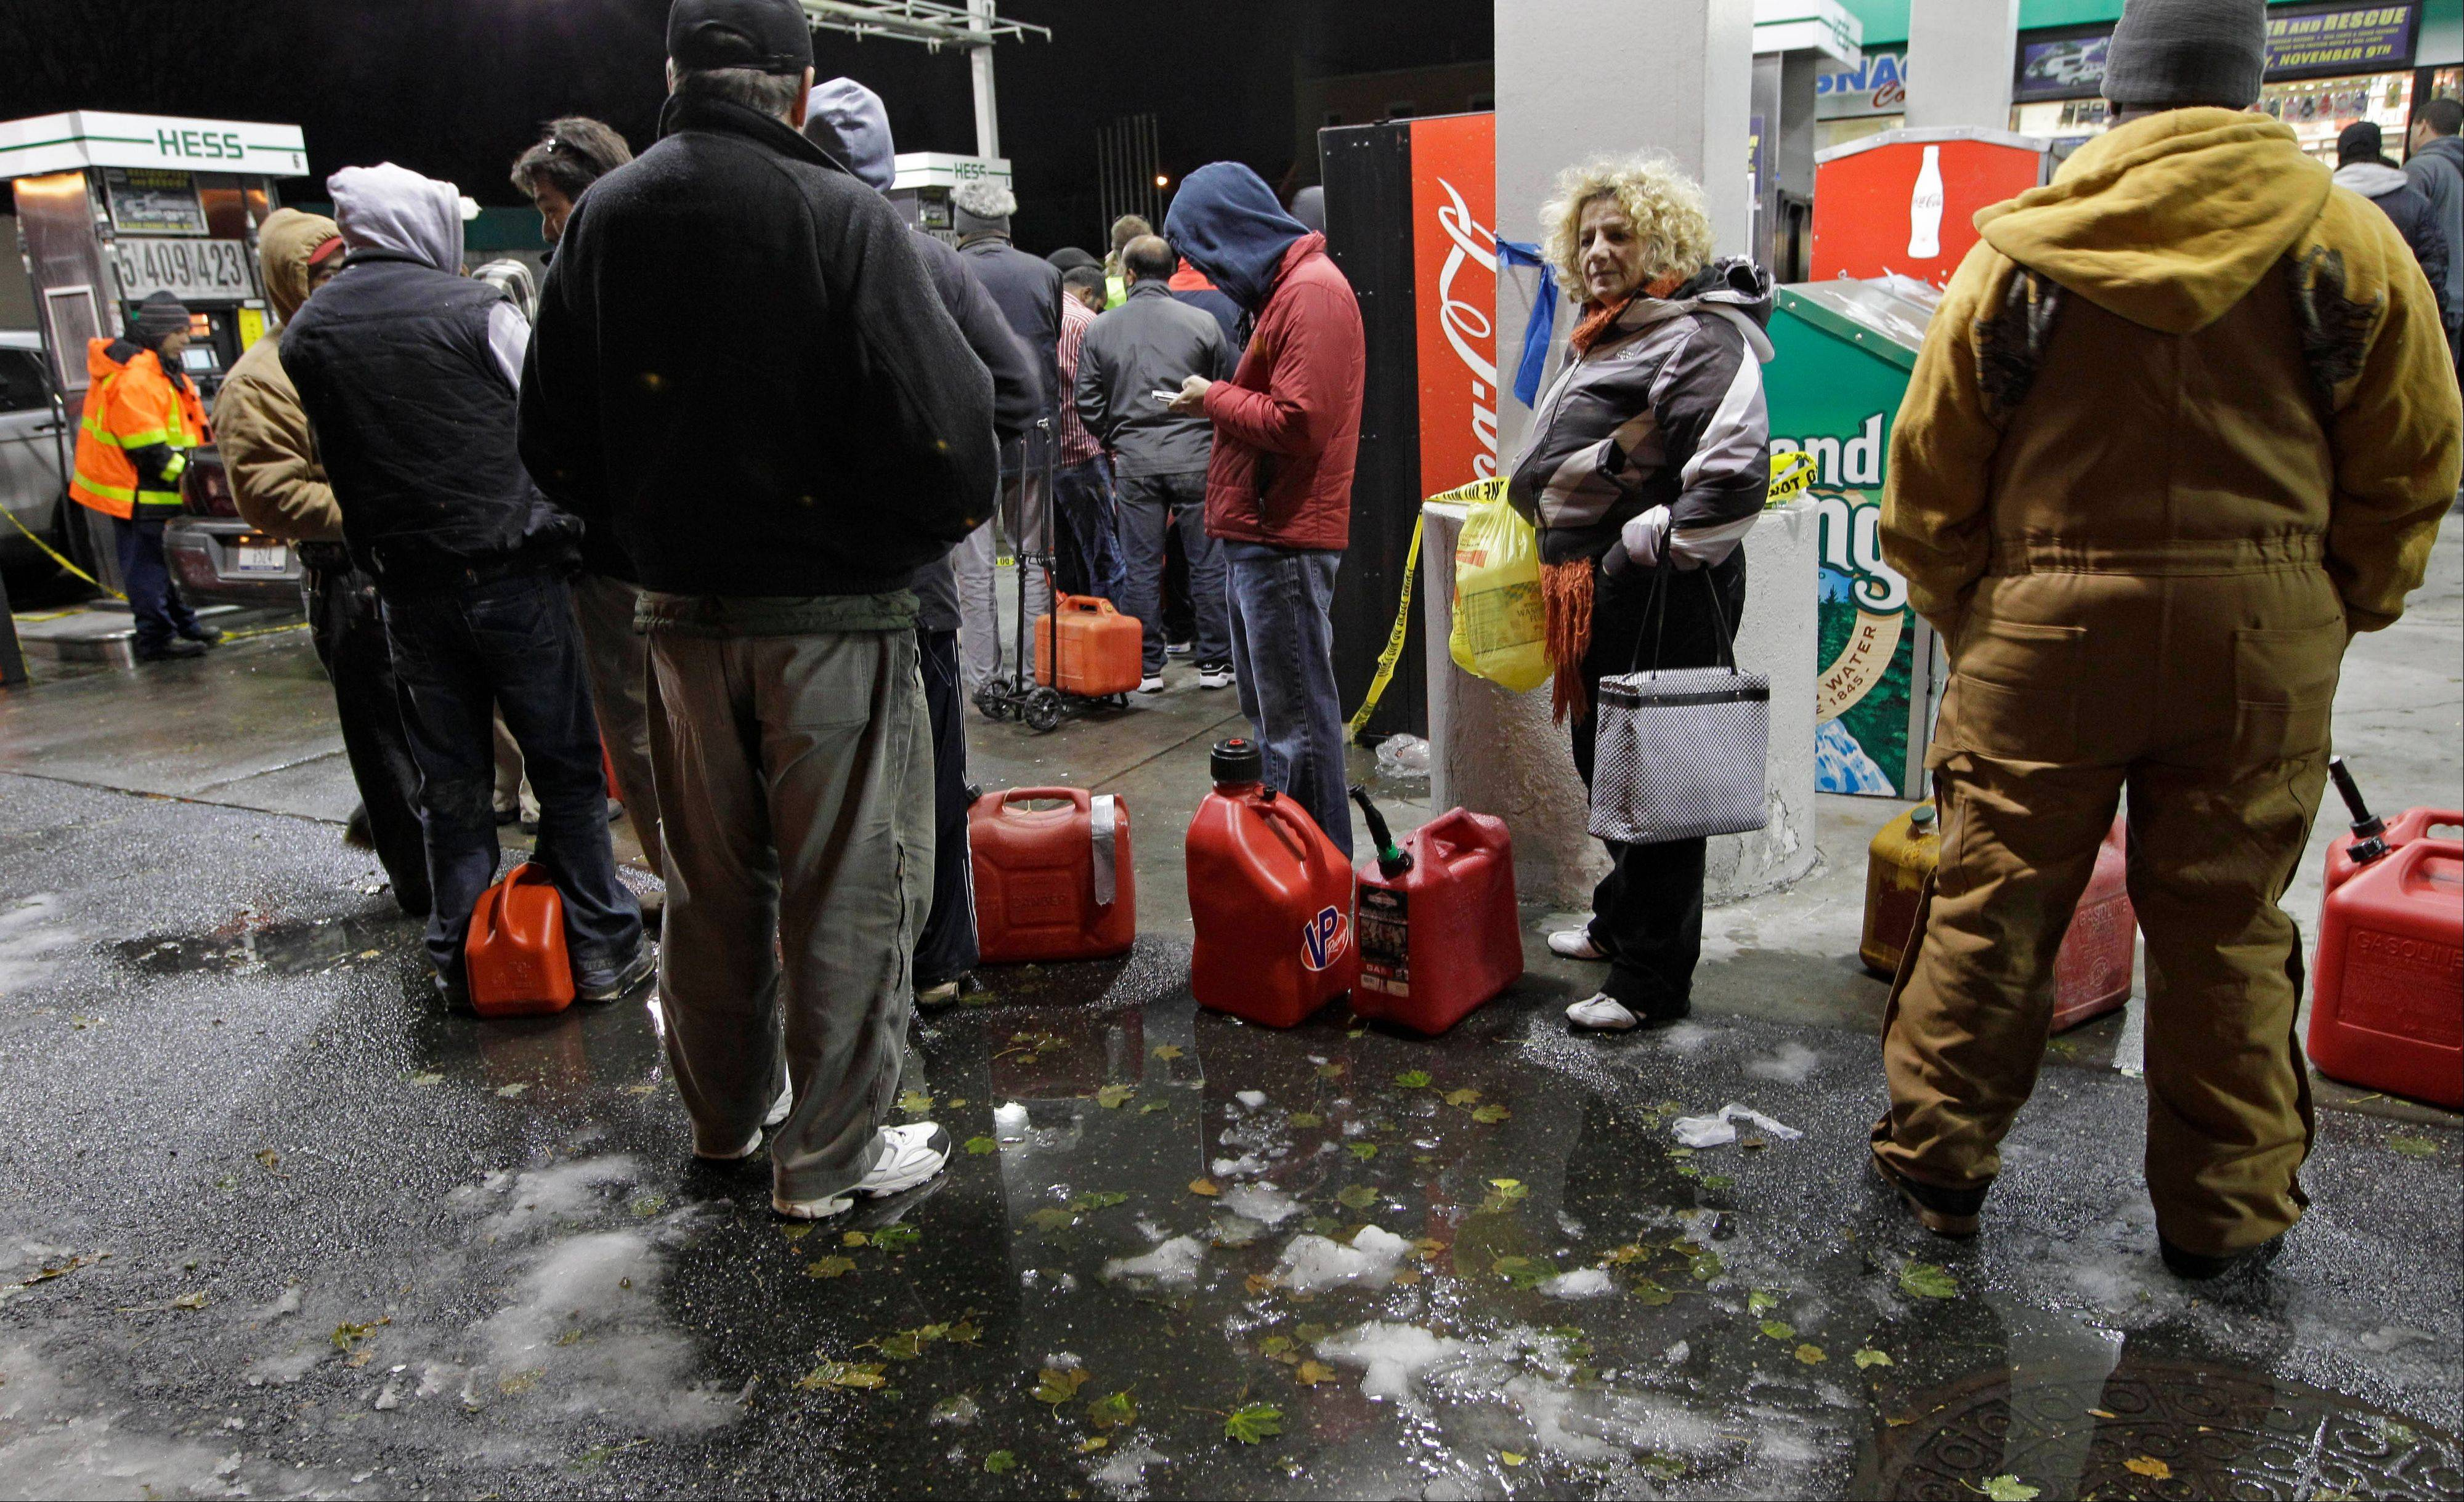 People wait in line for gasoline in Brooklyn, where gas is still scarce, Thursday. Fuel shortages and distribution delays that led to gas hoarding have prompted New York City and Long Island to initiate an even-odd gas rationing plan which begins Friday.